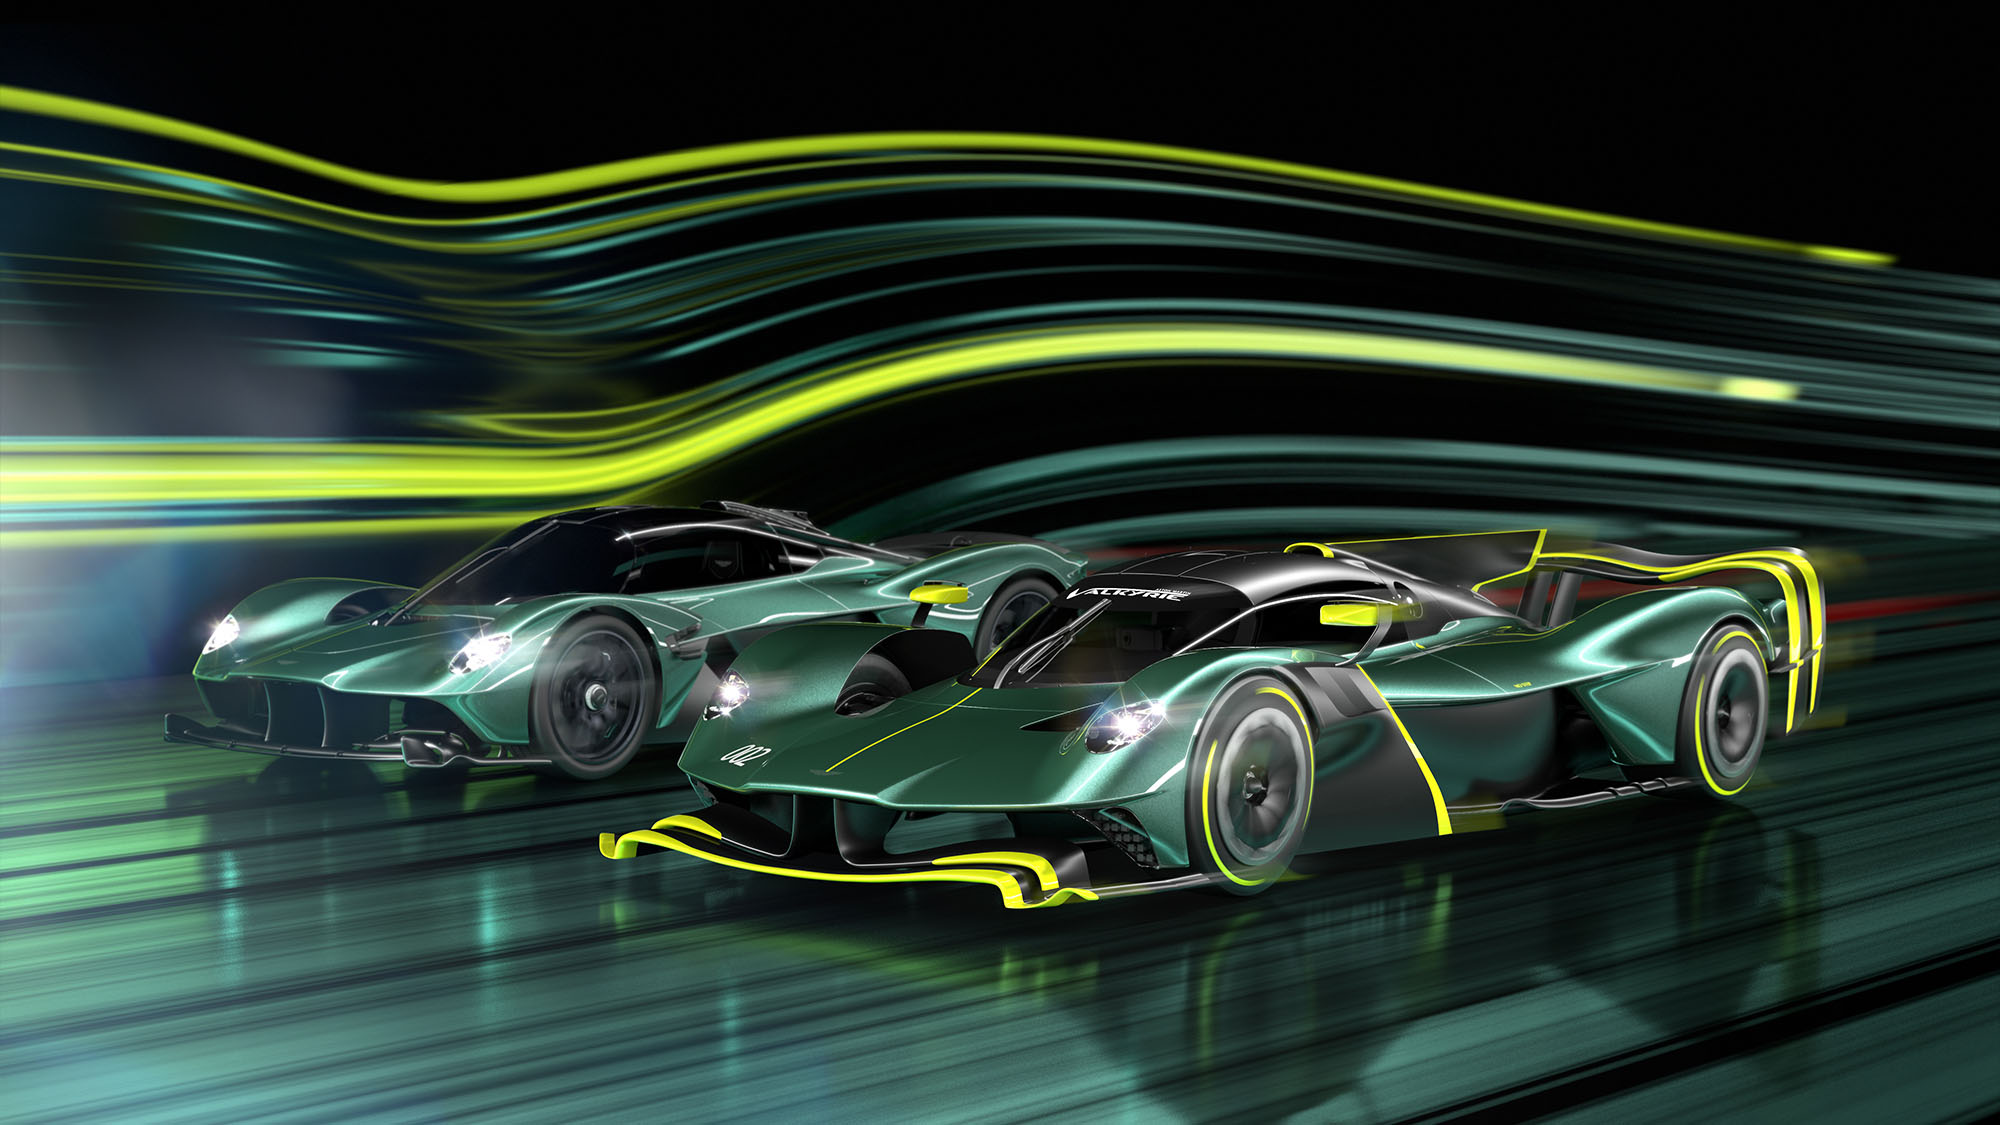 Aston Martin Valkyrie AMR Pro wioth Valkyrie road car